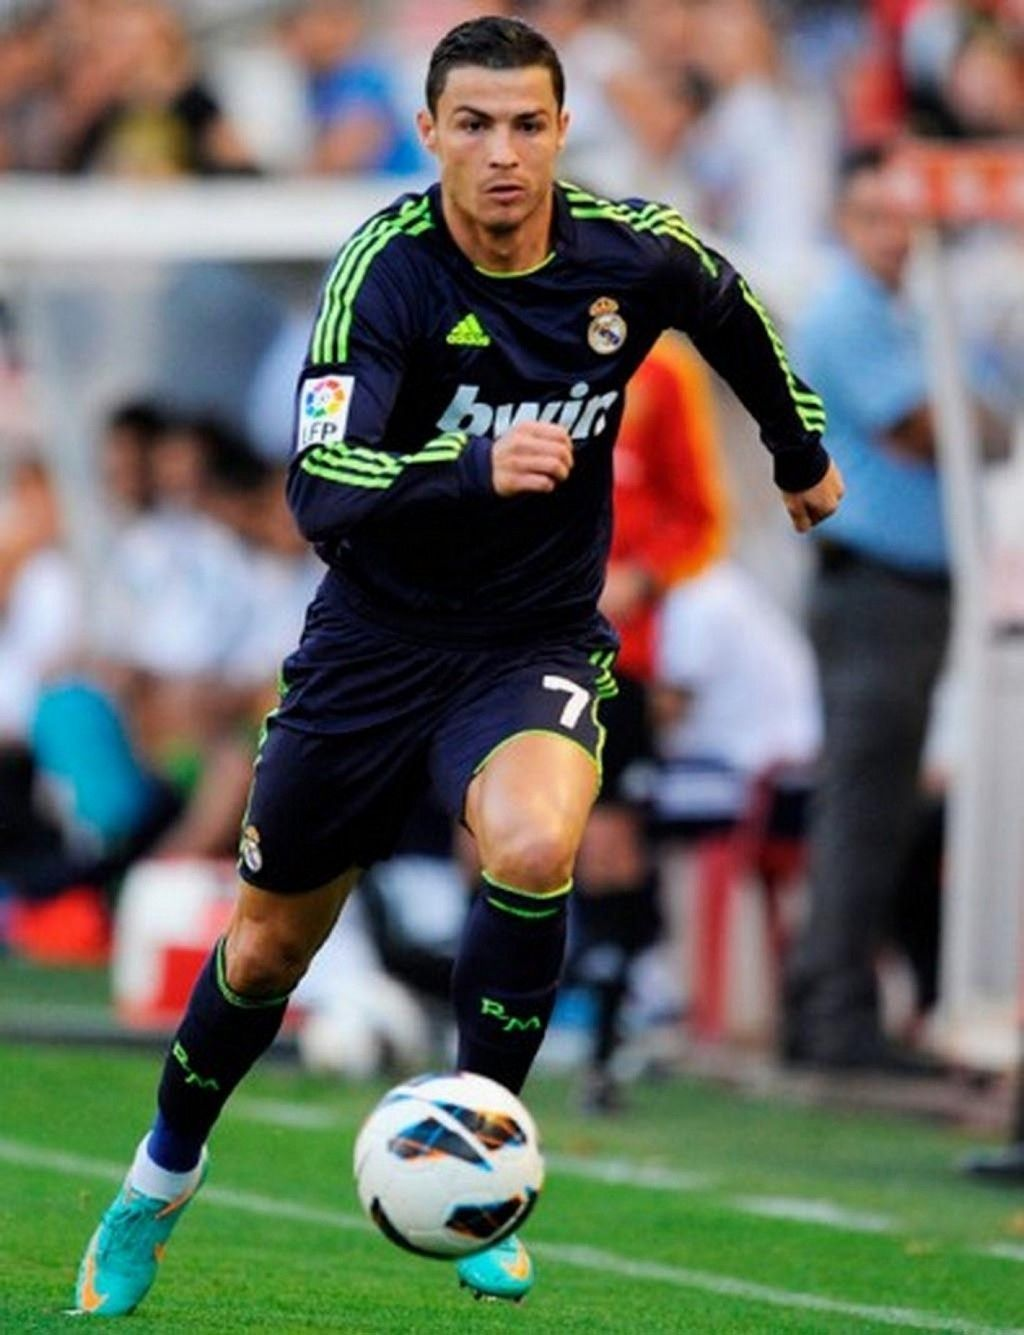 cristiano ronaldo hd wallpapers | hd wallpapers | pinterest